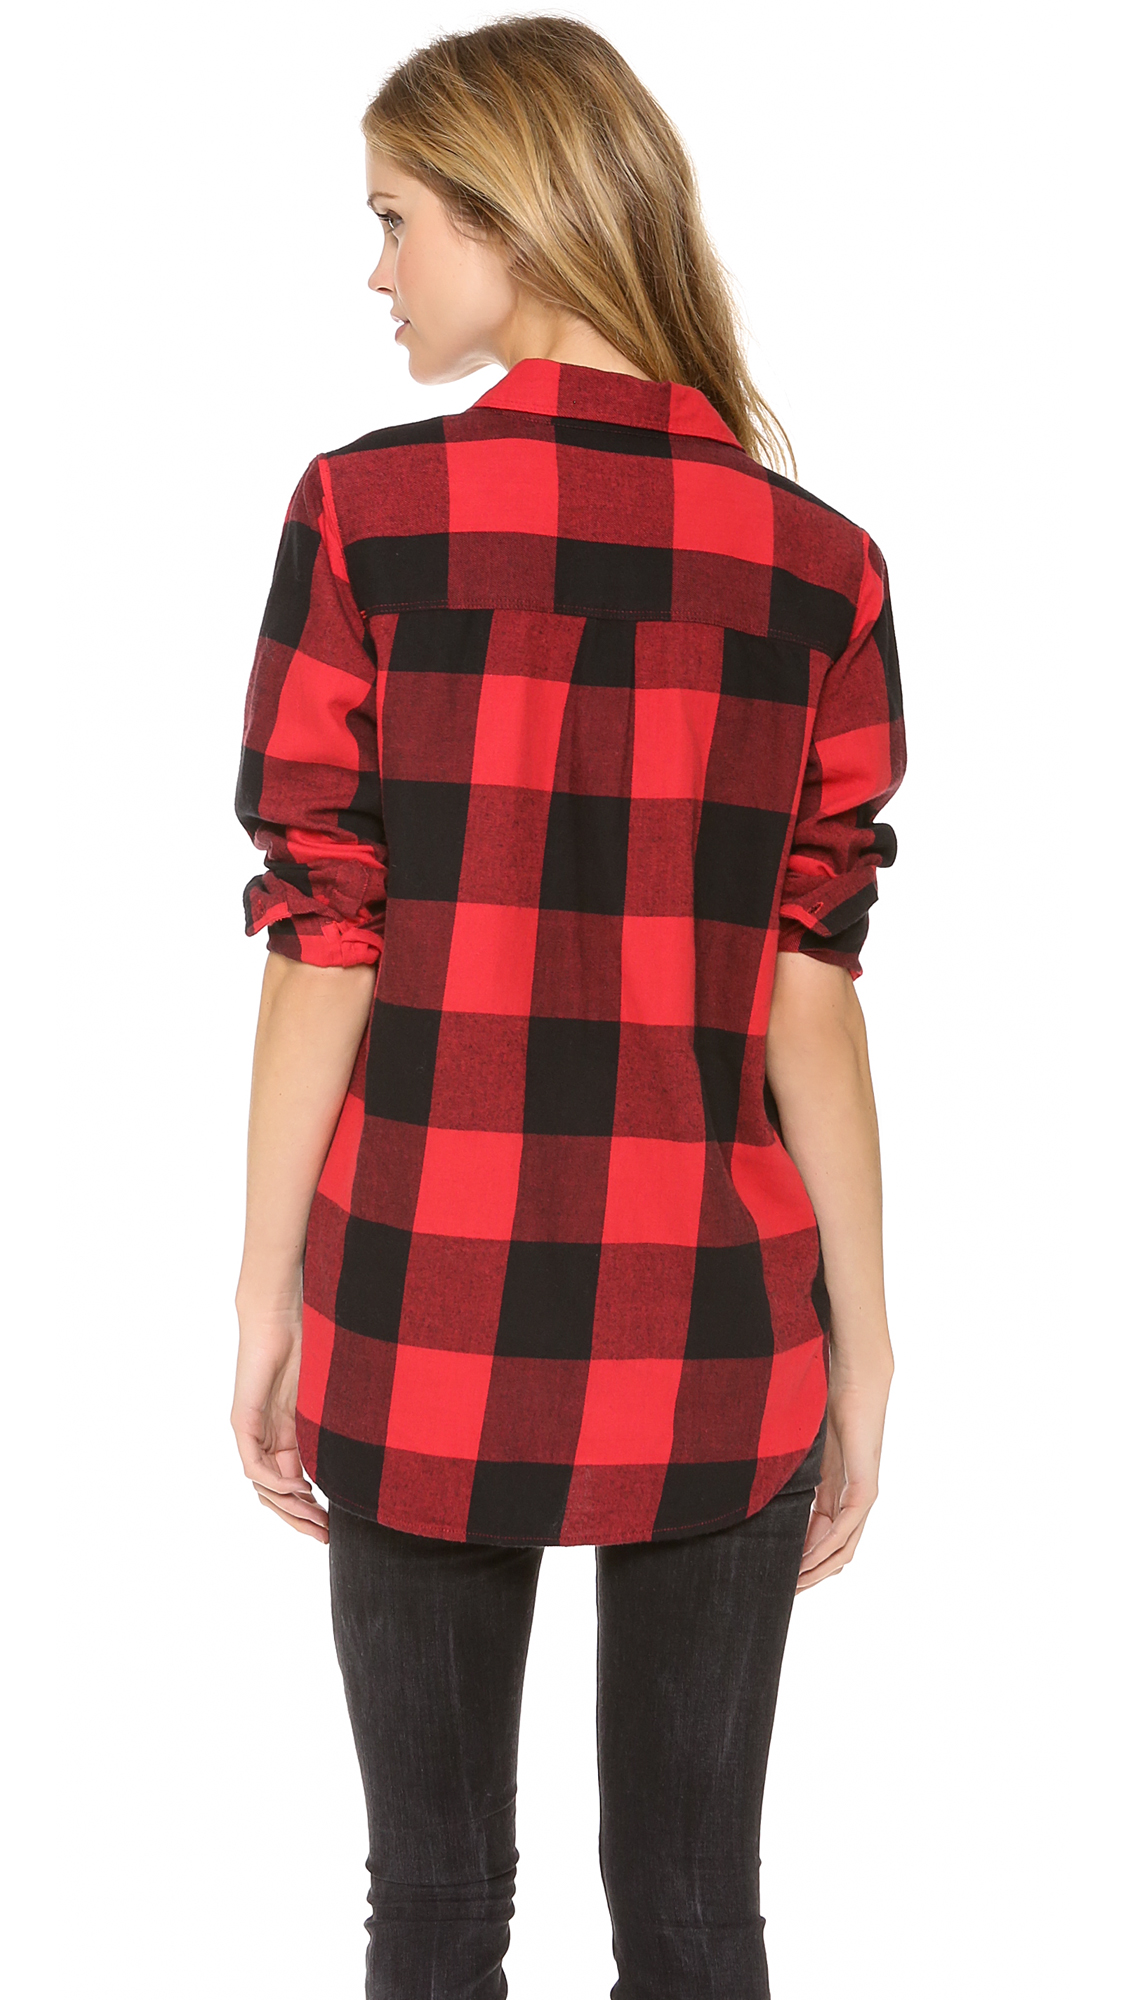 Buffalo Check Shirt Womens